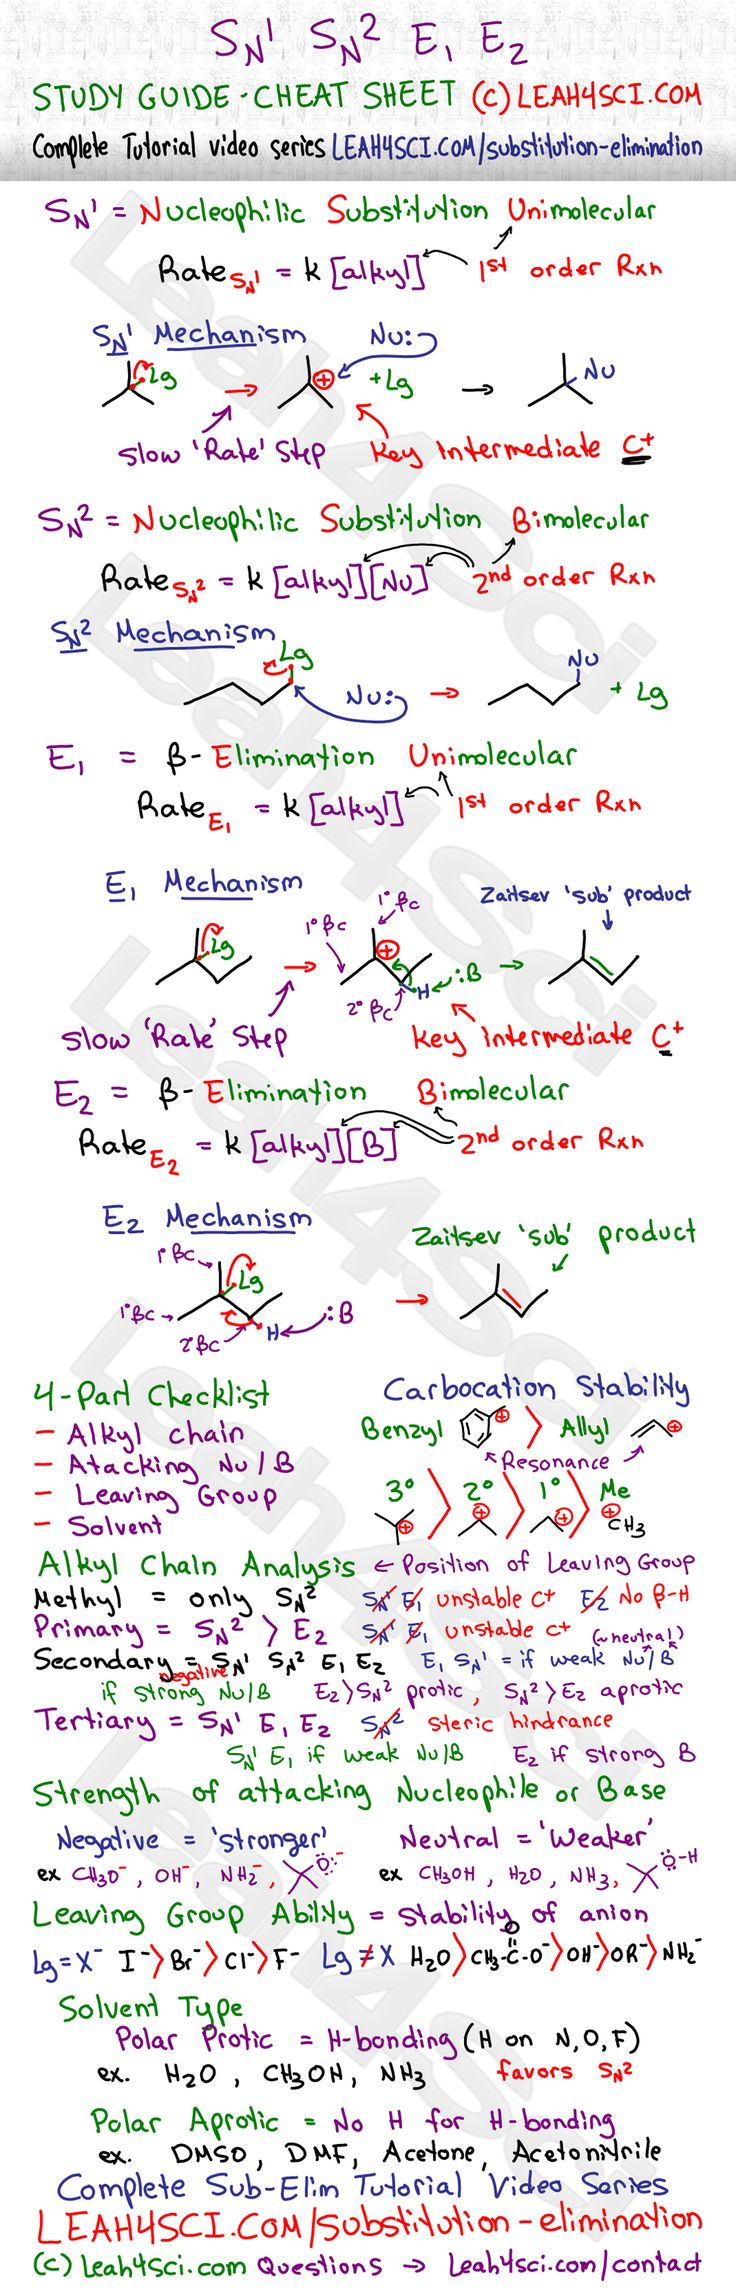 Learn Chemistry - A Guide to Basic Concepts